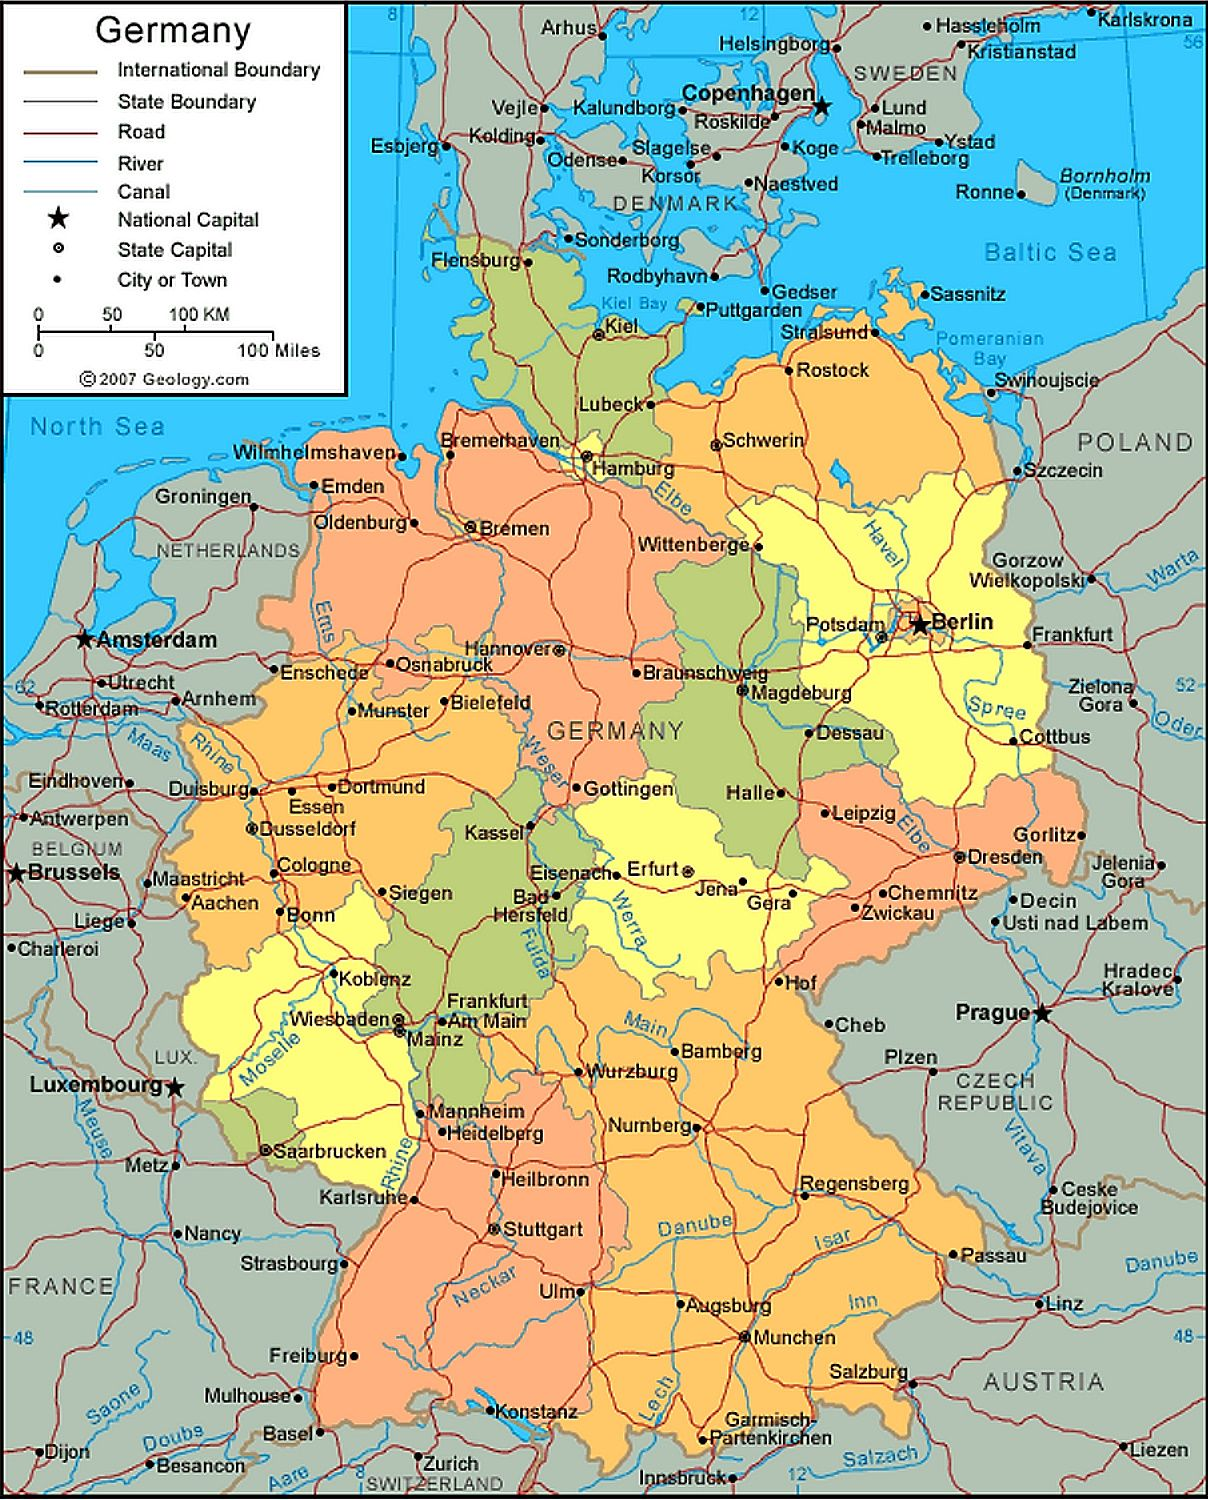 Map Of Germany Today.Image Result For Germany Today Me Map Germany World